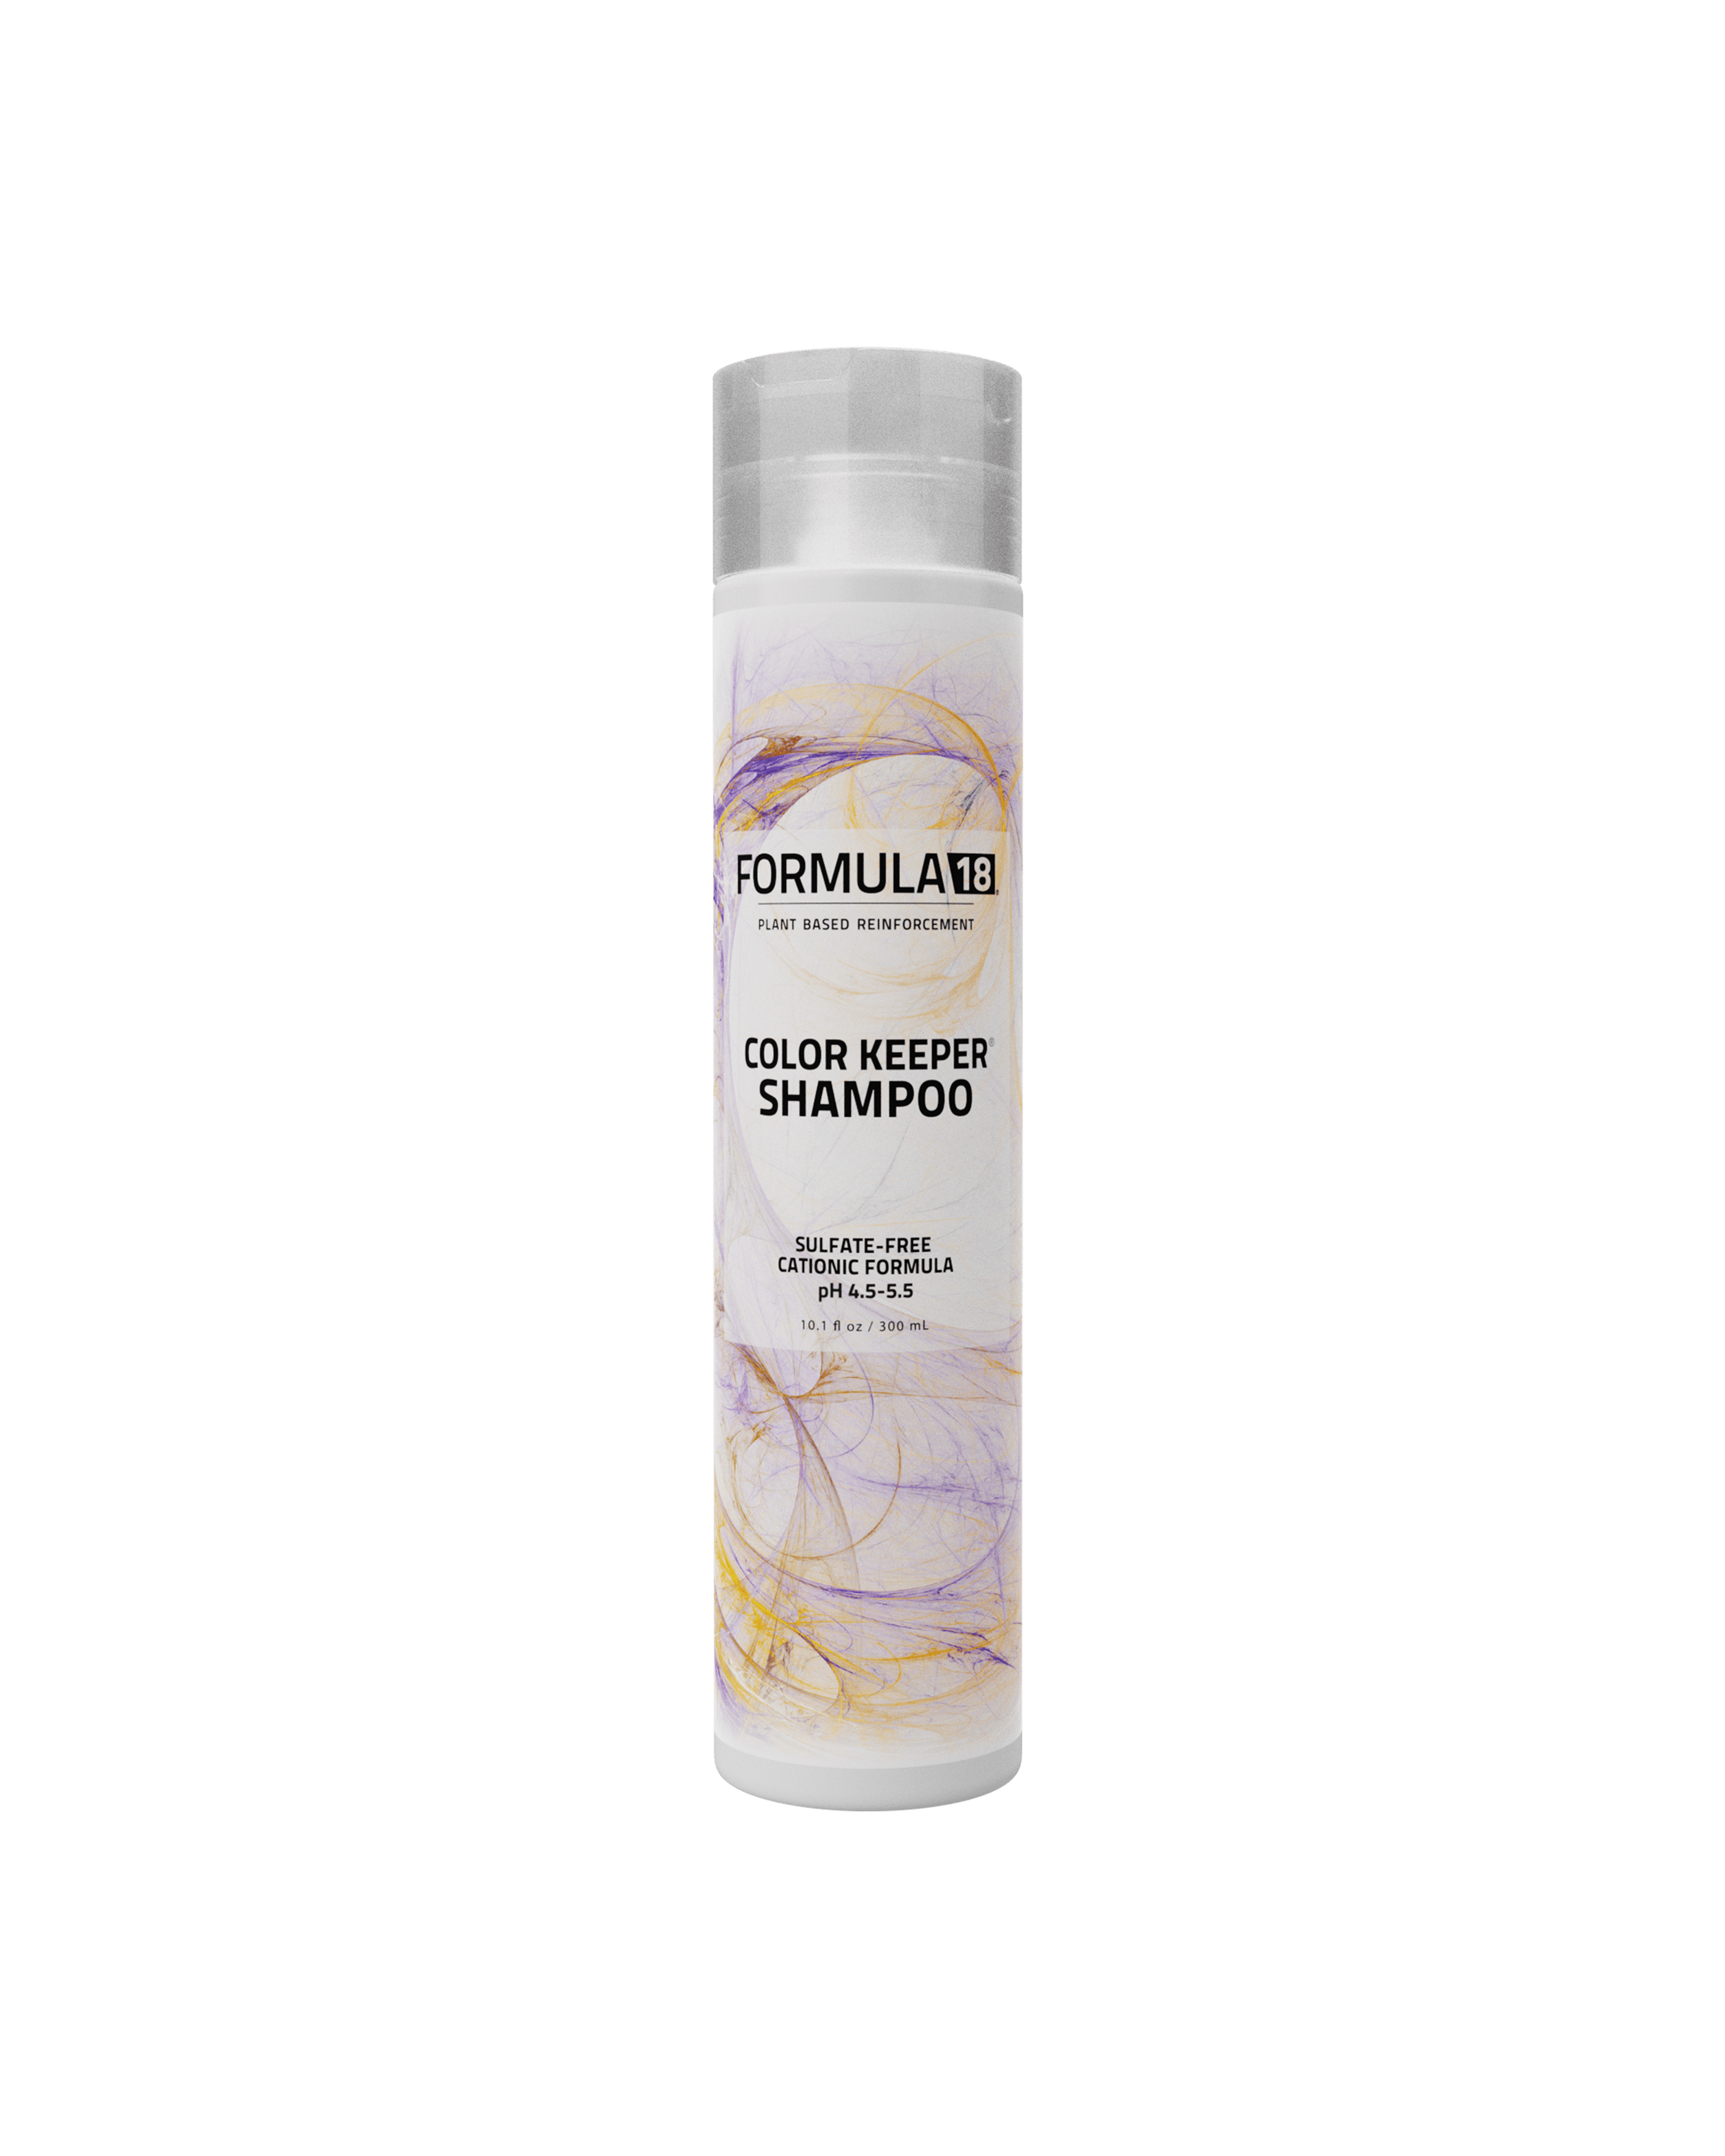 Color Keeper Shampoo